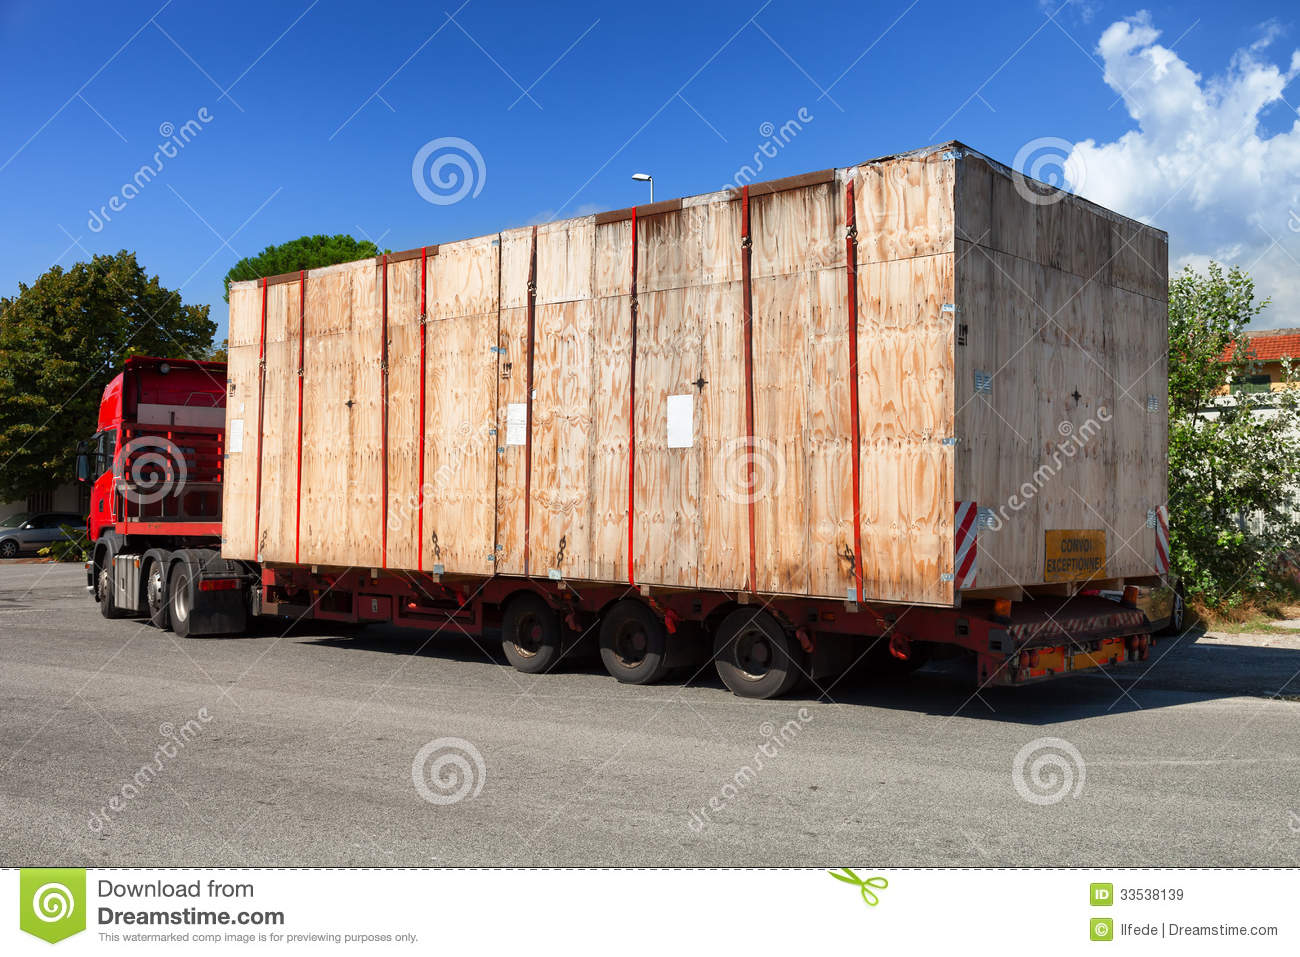 Semi Truck On The Road Royalty Free Stock Images - Image: 33538139